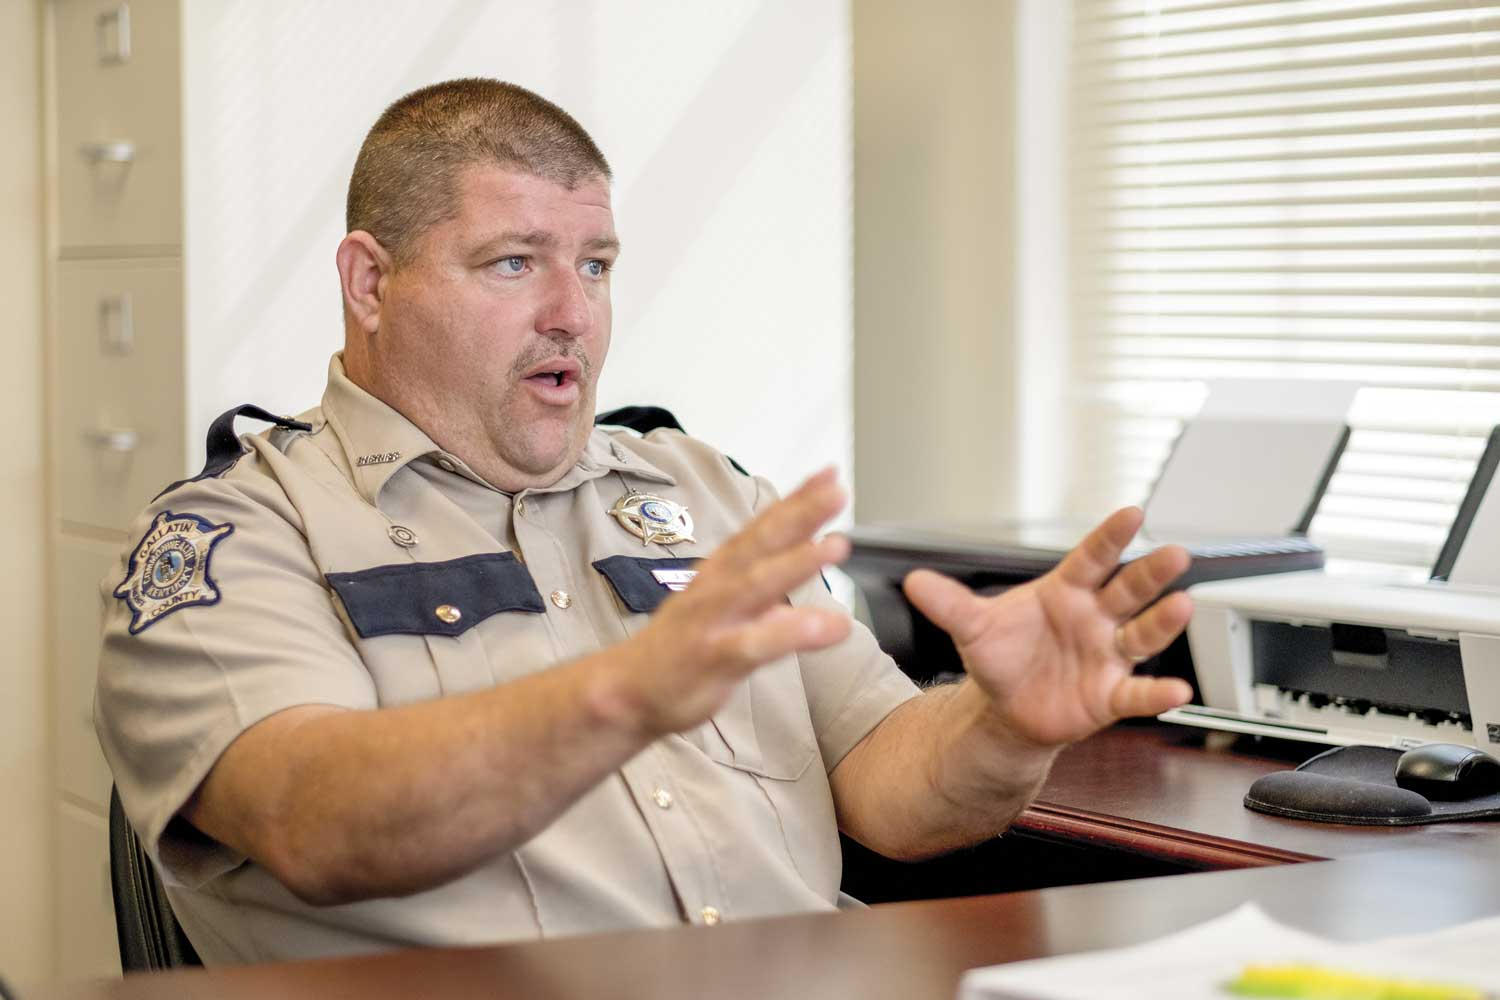 Gallatin County Sheriff Josh Neale strives to offer the best coverage and service to the county's 8,500 residents. He says he enjoys the personalized interaction his officers can offer the community. (Photos by Jim Robertson)